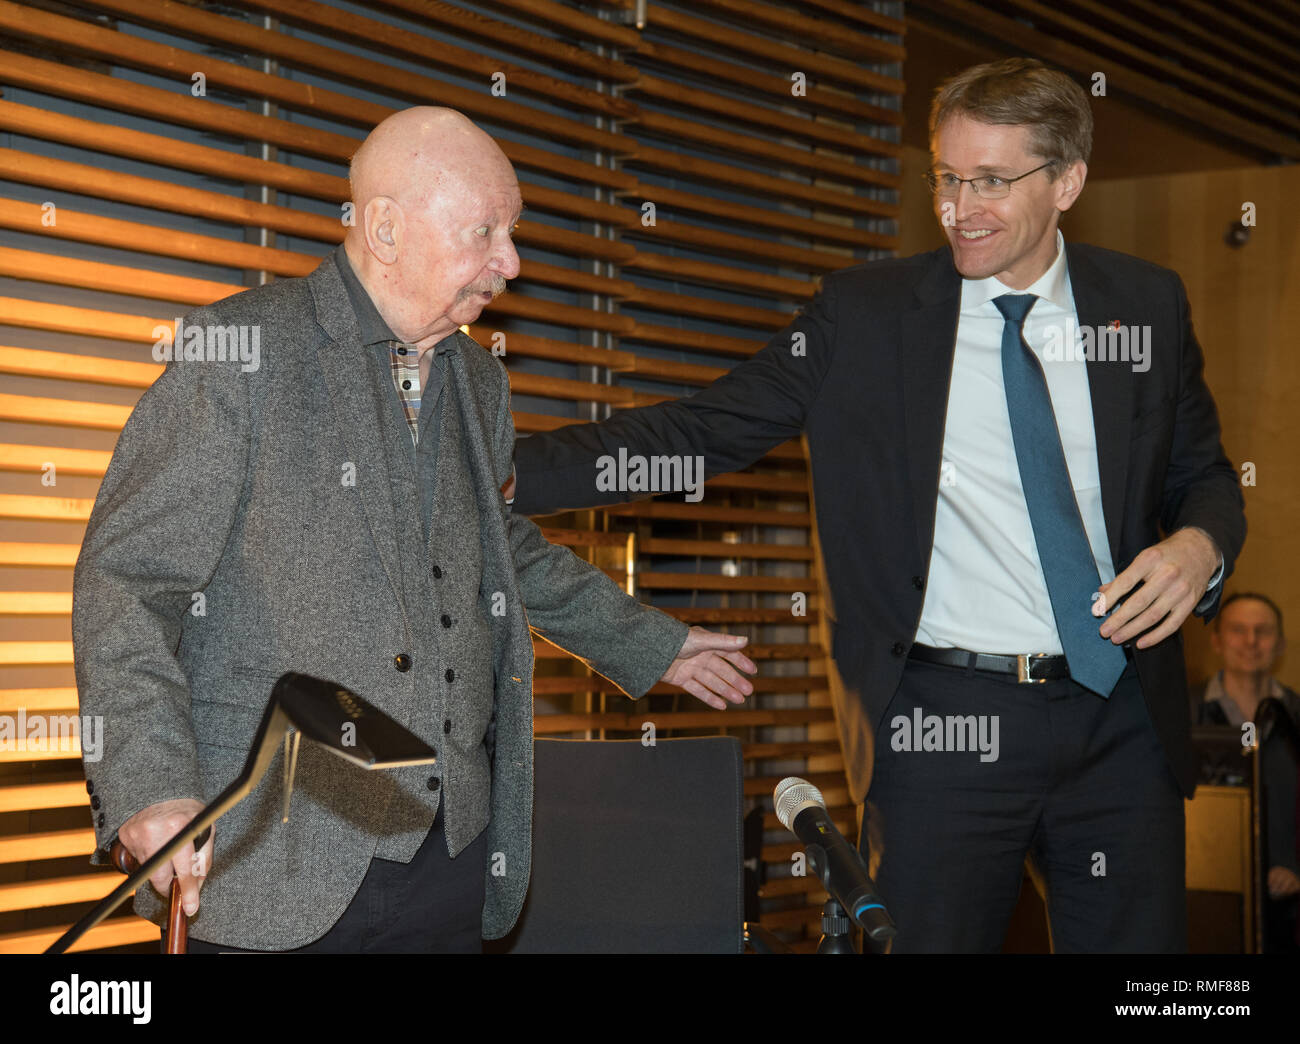 Berlin, Germany. 14th Feb, 2019. The writer Günter Kunert (l) and Daniel Günther (CDU), Minister President of Schleswig-Holstein, welcome each other in the state representation of Schleswig-Holstein before a conversation about the book 'The Second Woman'. Kunert had written the novel almost 45 years ago, found the book unprintable in the GDR at the time, and at some point forgotten the manuscript in its hiding place. Now the book has been published by Wallstein-Verlag. Credit: Soeren Stache/dpa/Alamy Live News - Stock Image